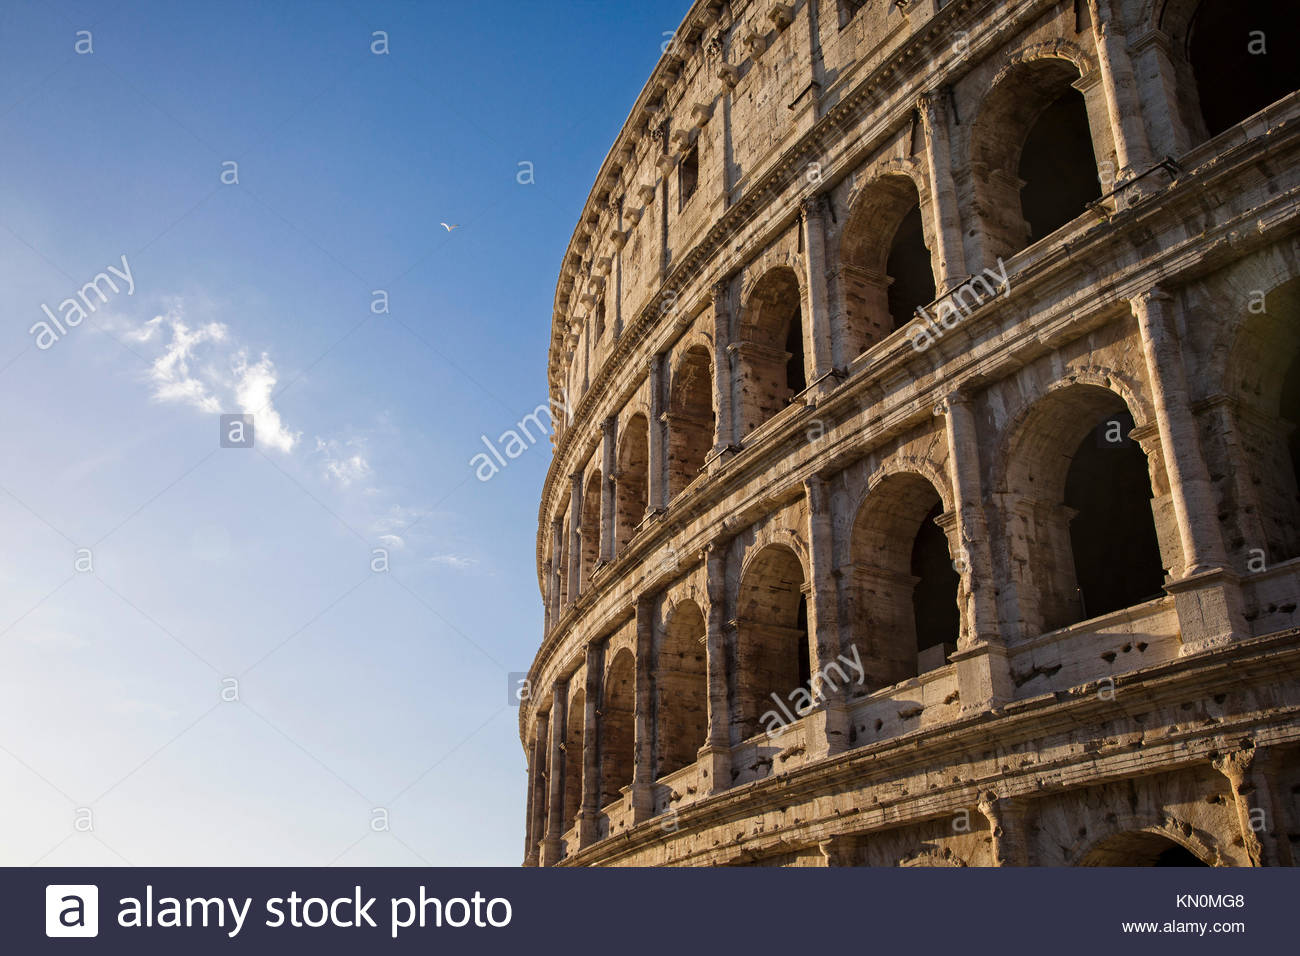 The Colosseum in Rome, Italy. - Stock Image